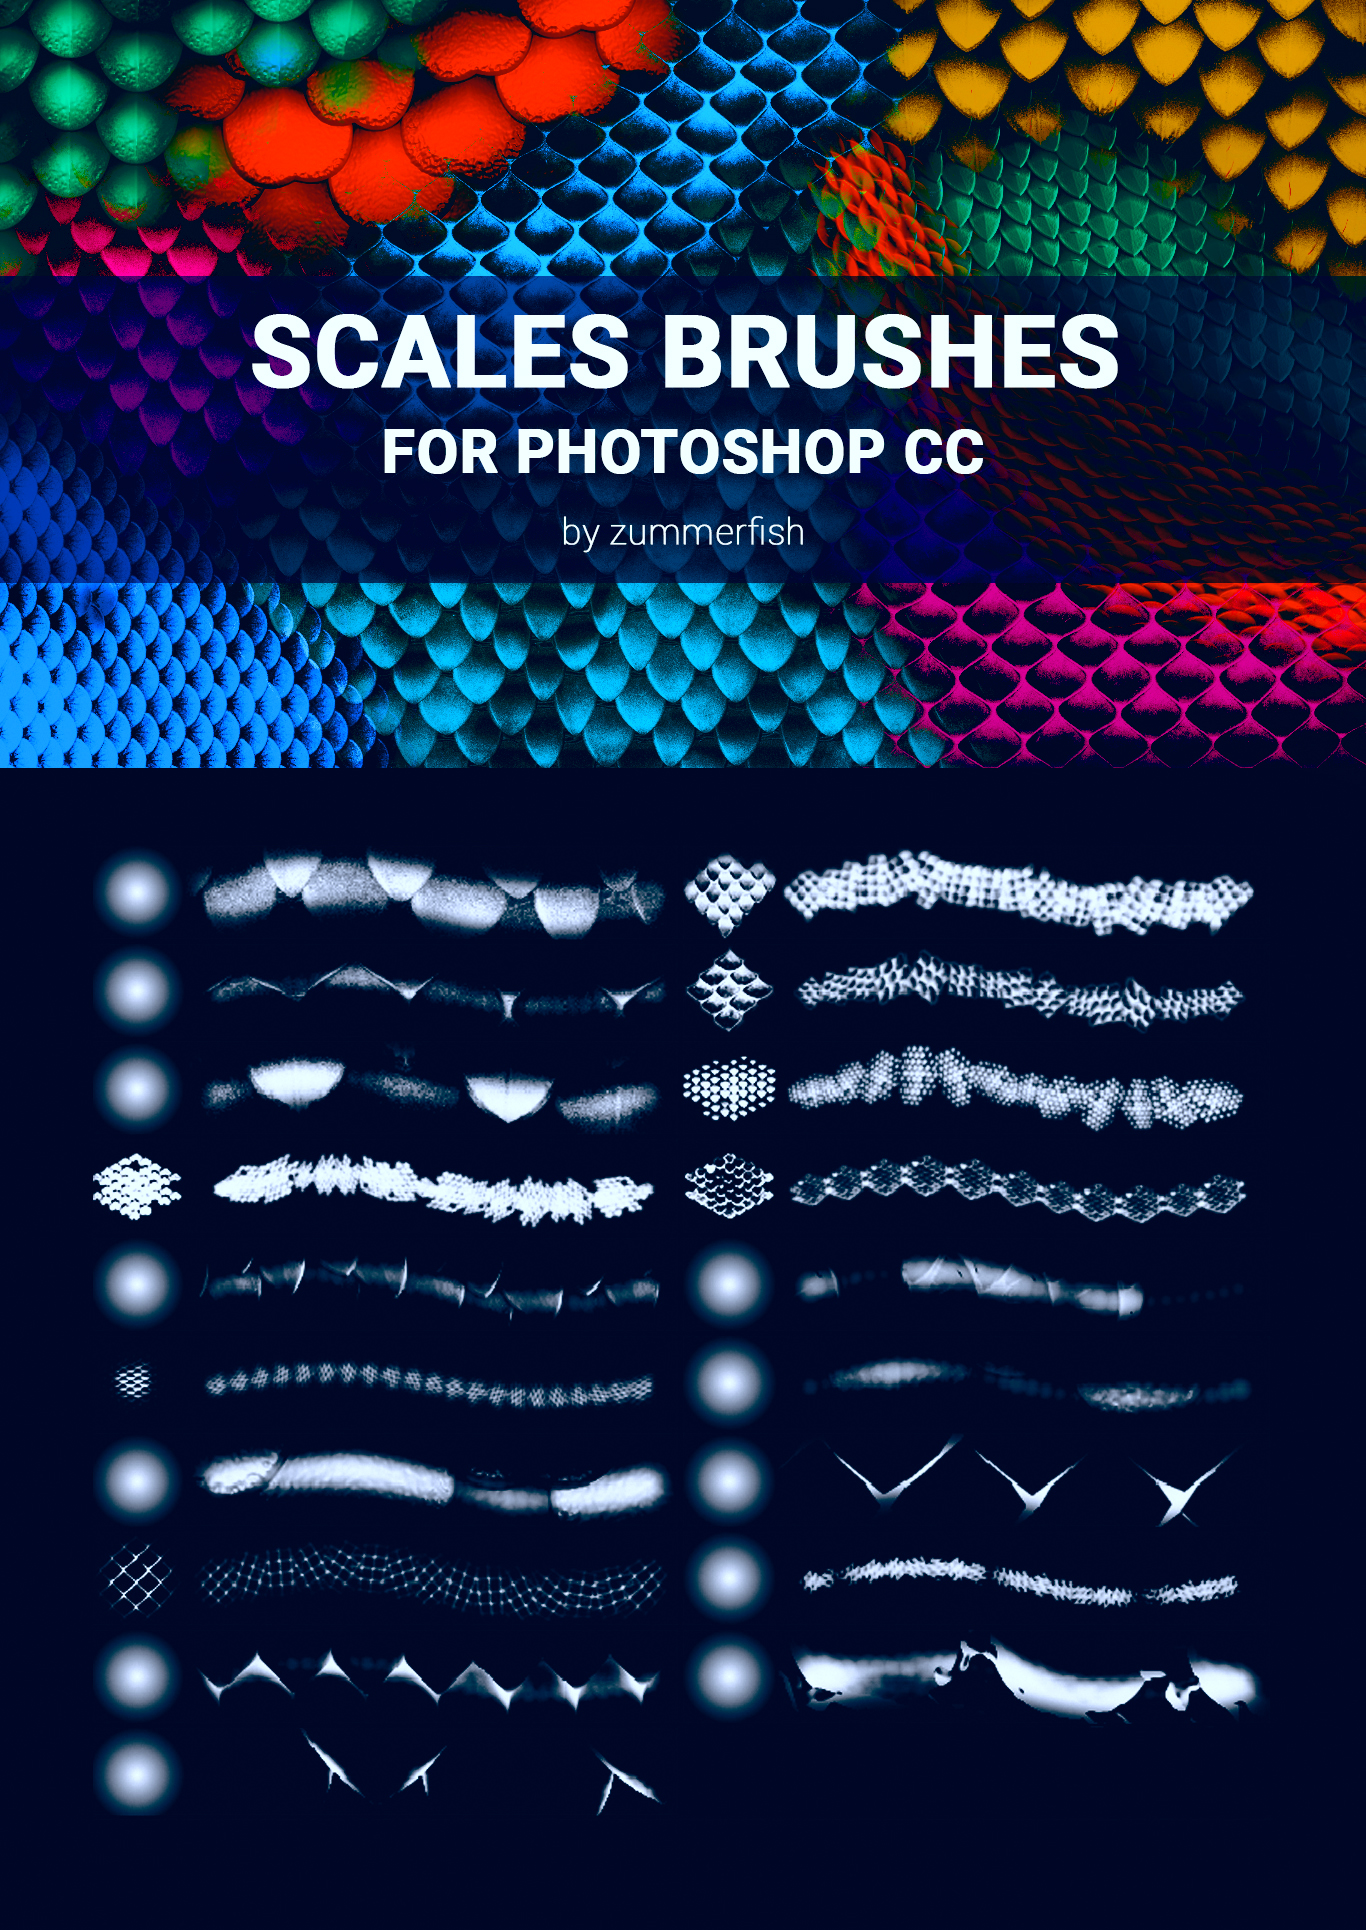 Zummerfish's Scales Brushes for Photoshop